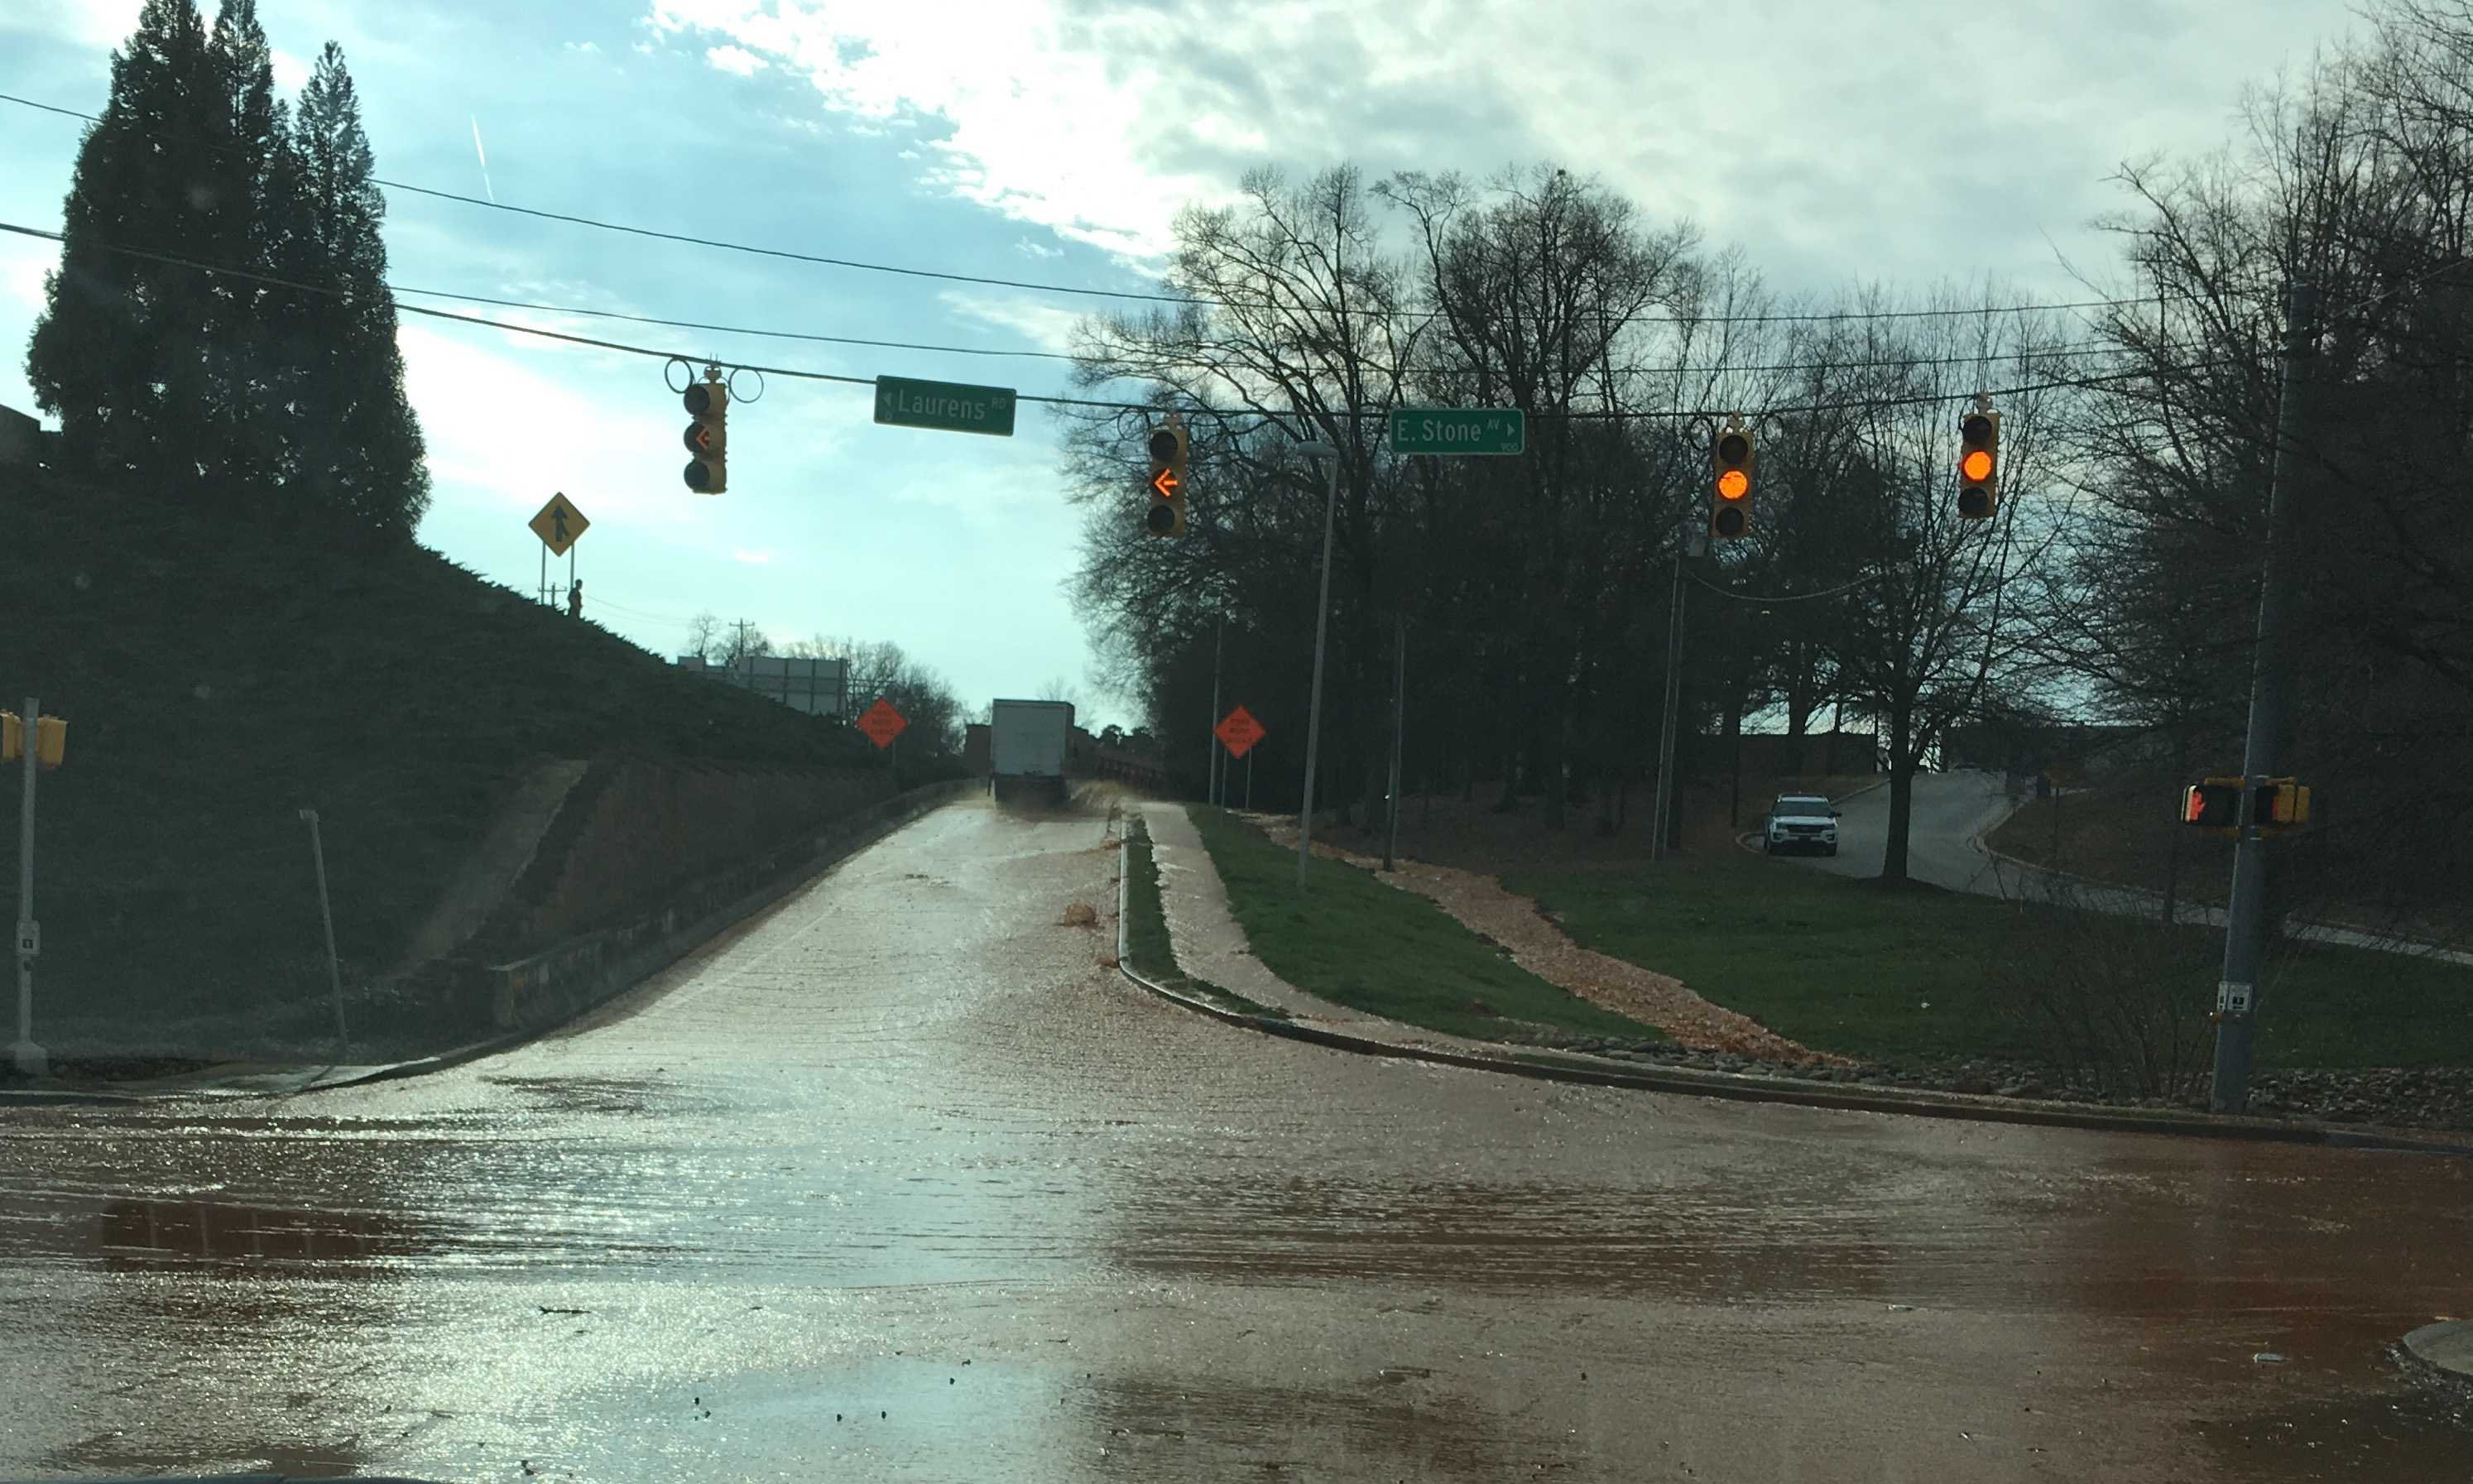 Greenville water main break floods Stone AveI385 area